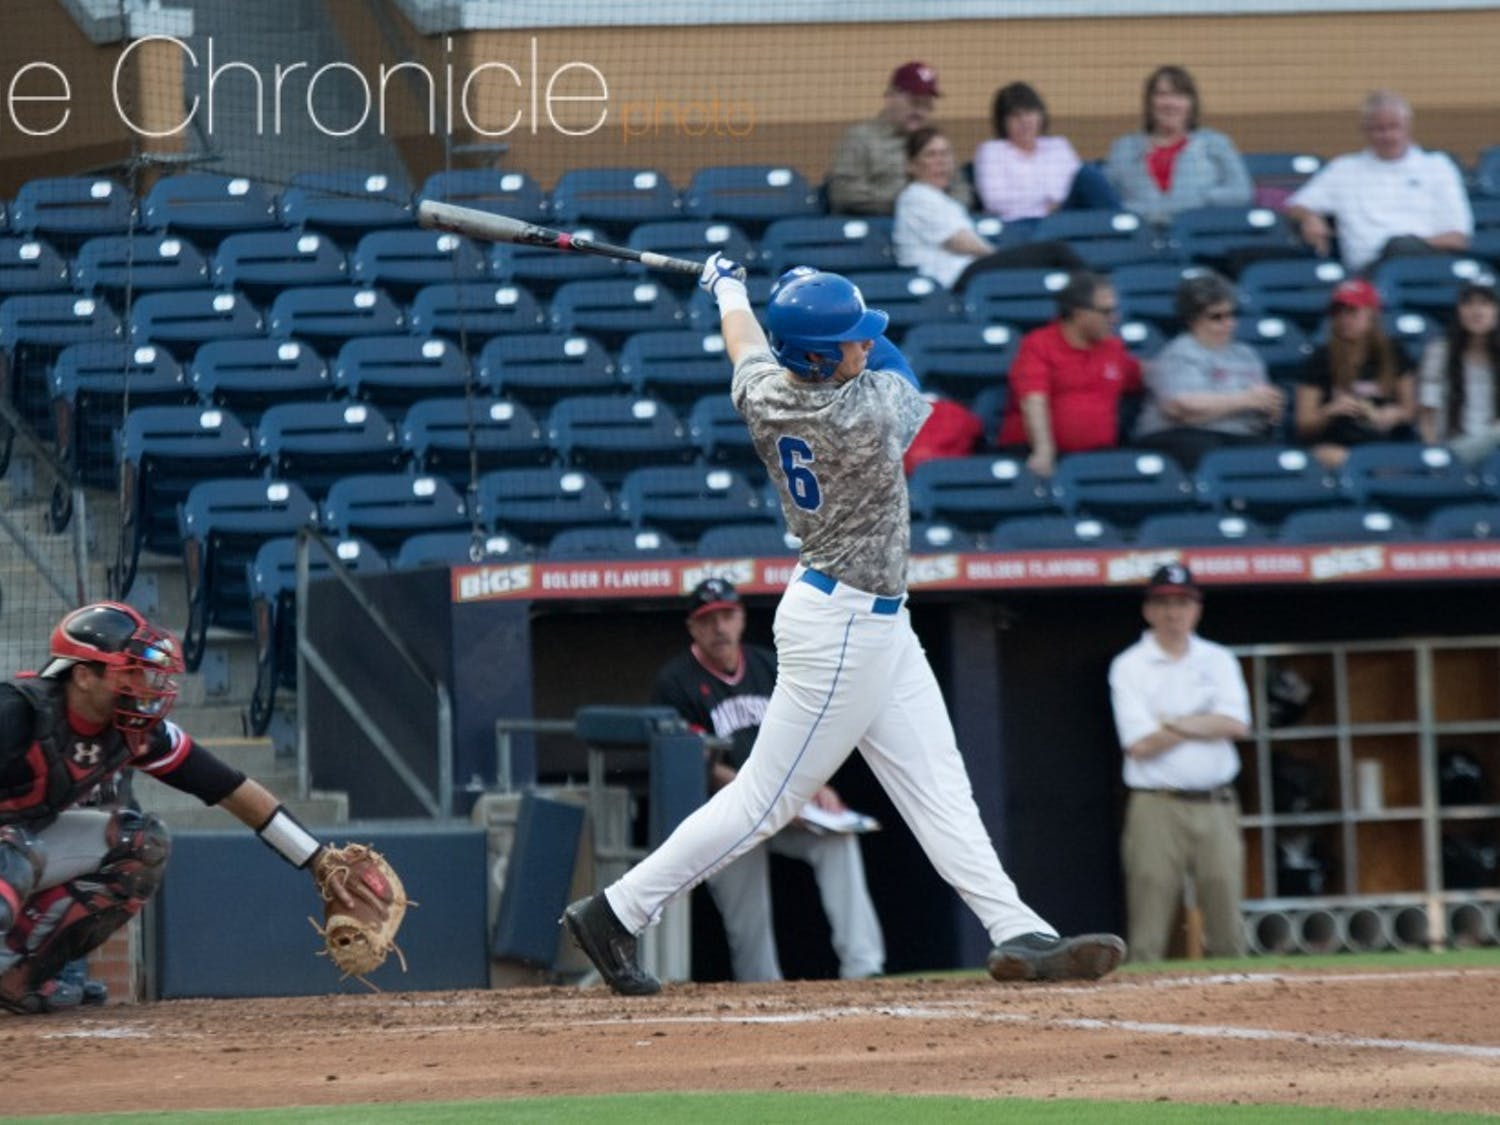 Jack Labosky and the Blue Devils have racked up at least 10 hits in three straight games.